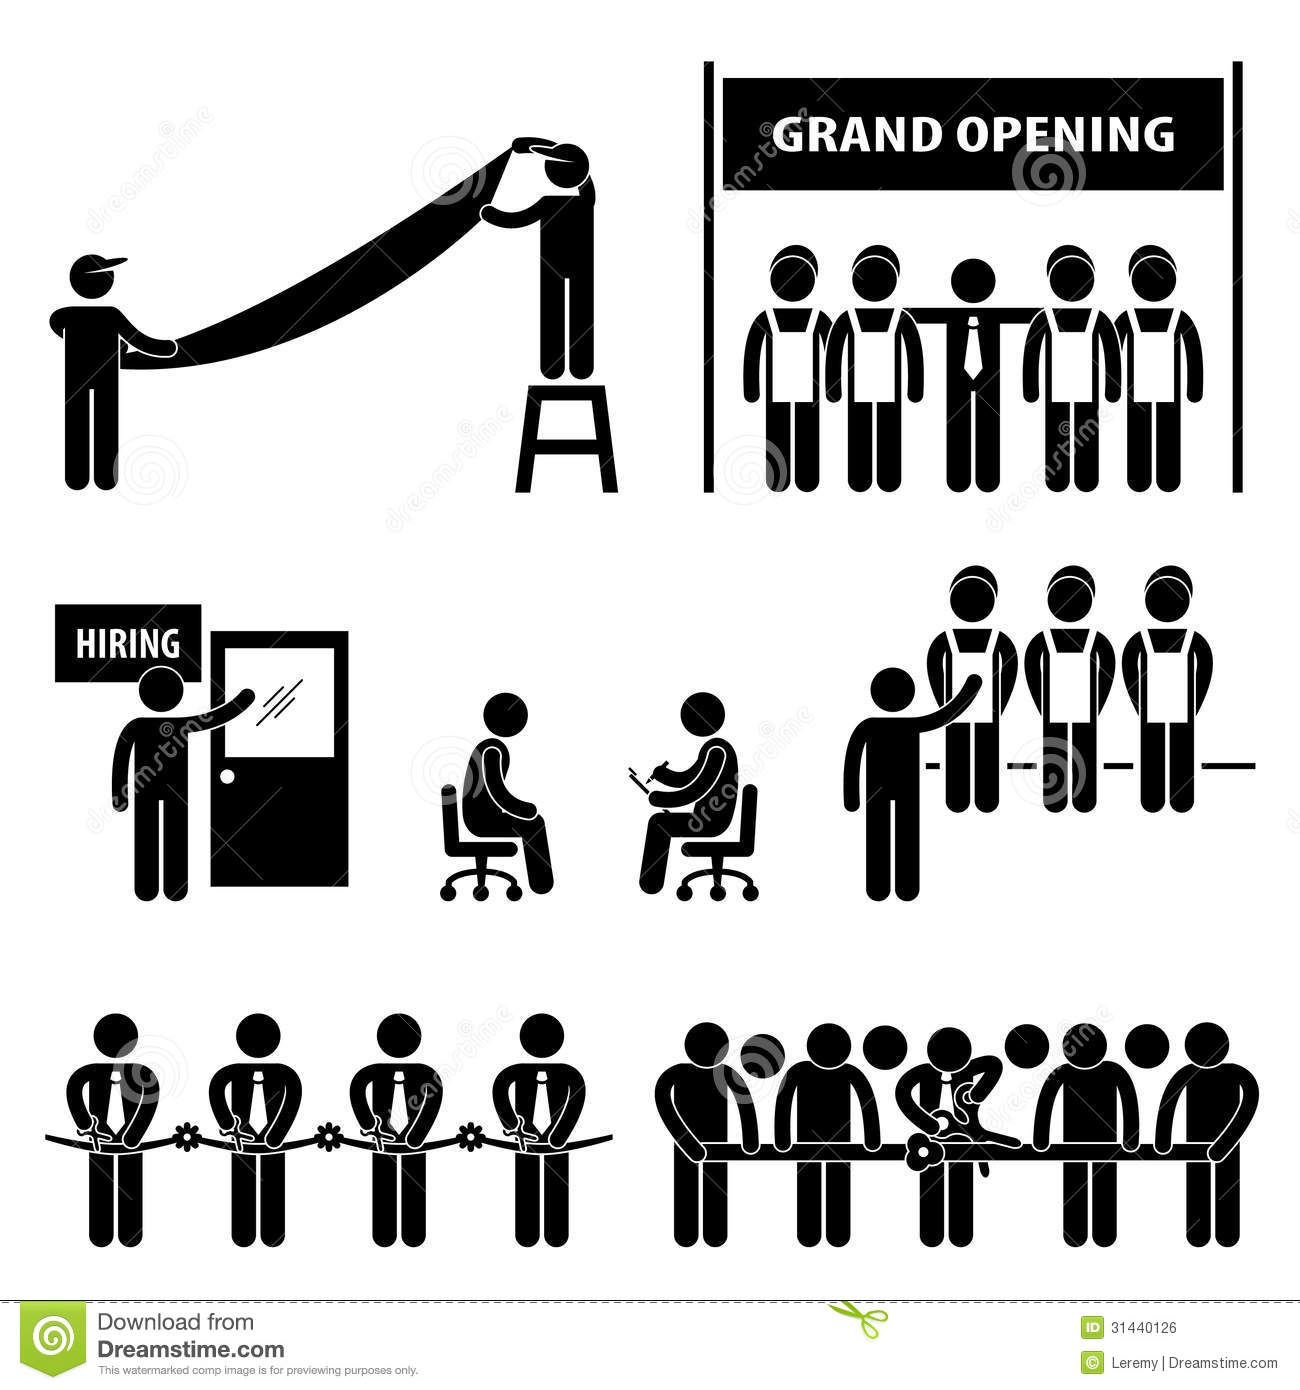 Business: Business Grand Opening Stick Figure Pictogram Royalty Free